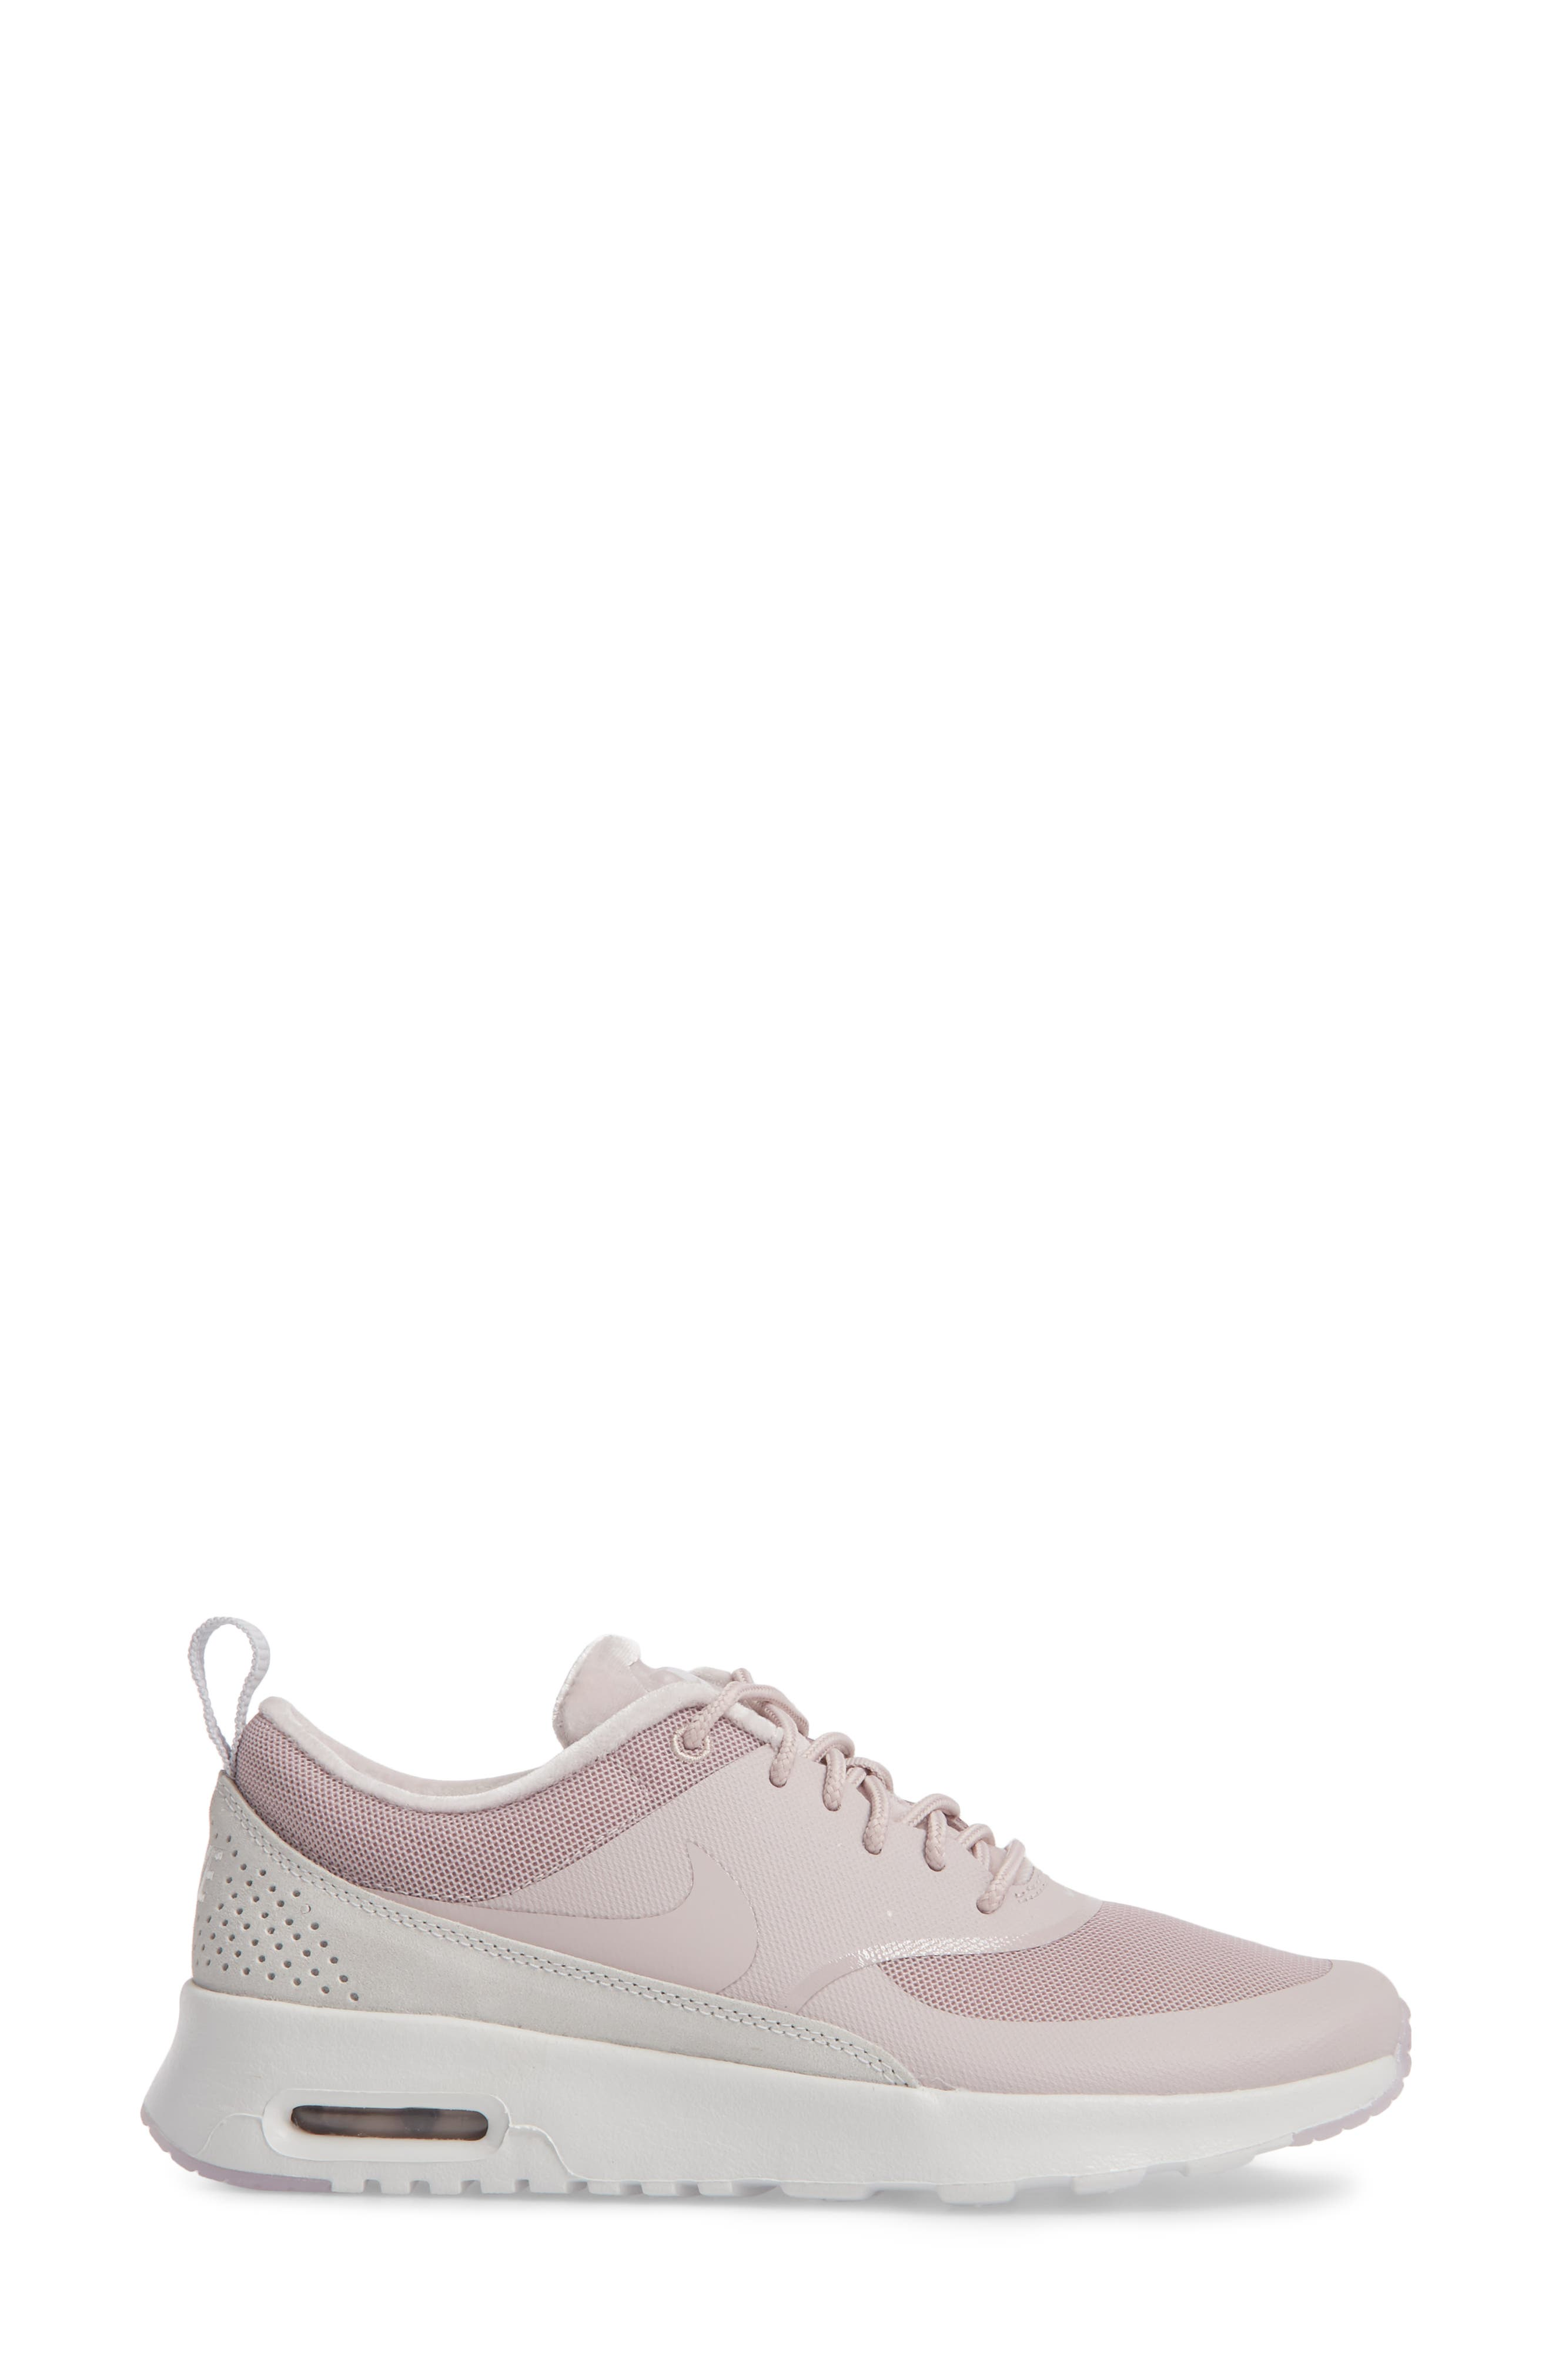 Air Max Thea LX Sneaker,                             Alternate thumbnail 3, color,                             Particle Rose/ Particle Rose